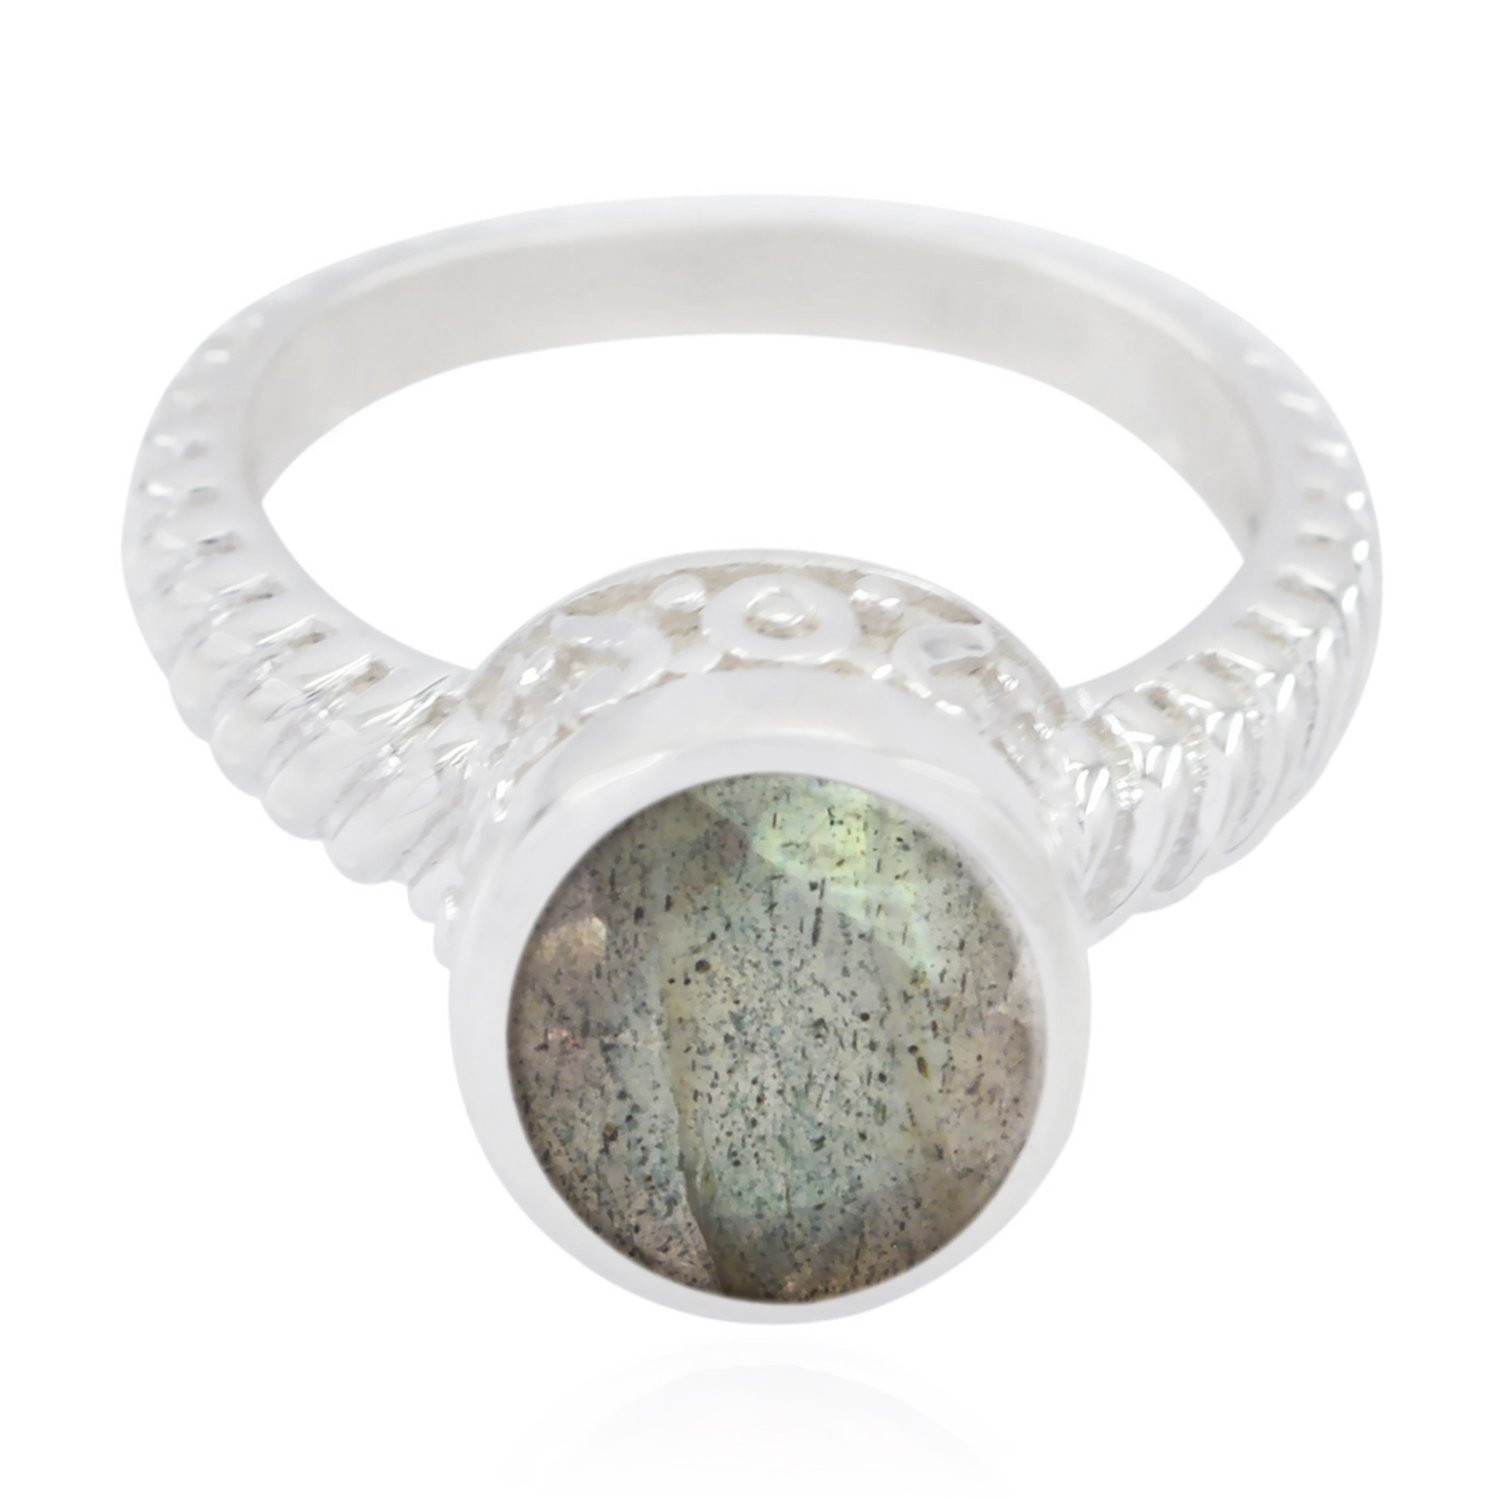 Natural Gemstone Round Faceted Labradorite Ring jents Jewelry fine Item Gift for Mothers Day Knot Ring 925 Sterling Silver Grey Labradorite Natural Gemstone Ring